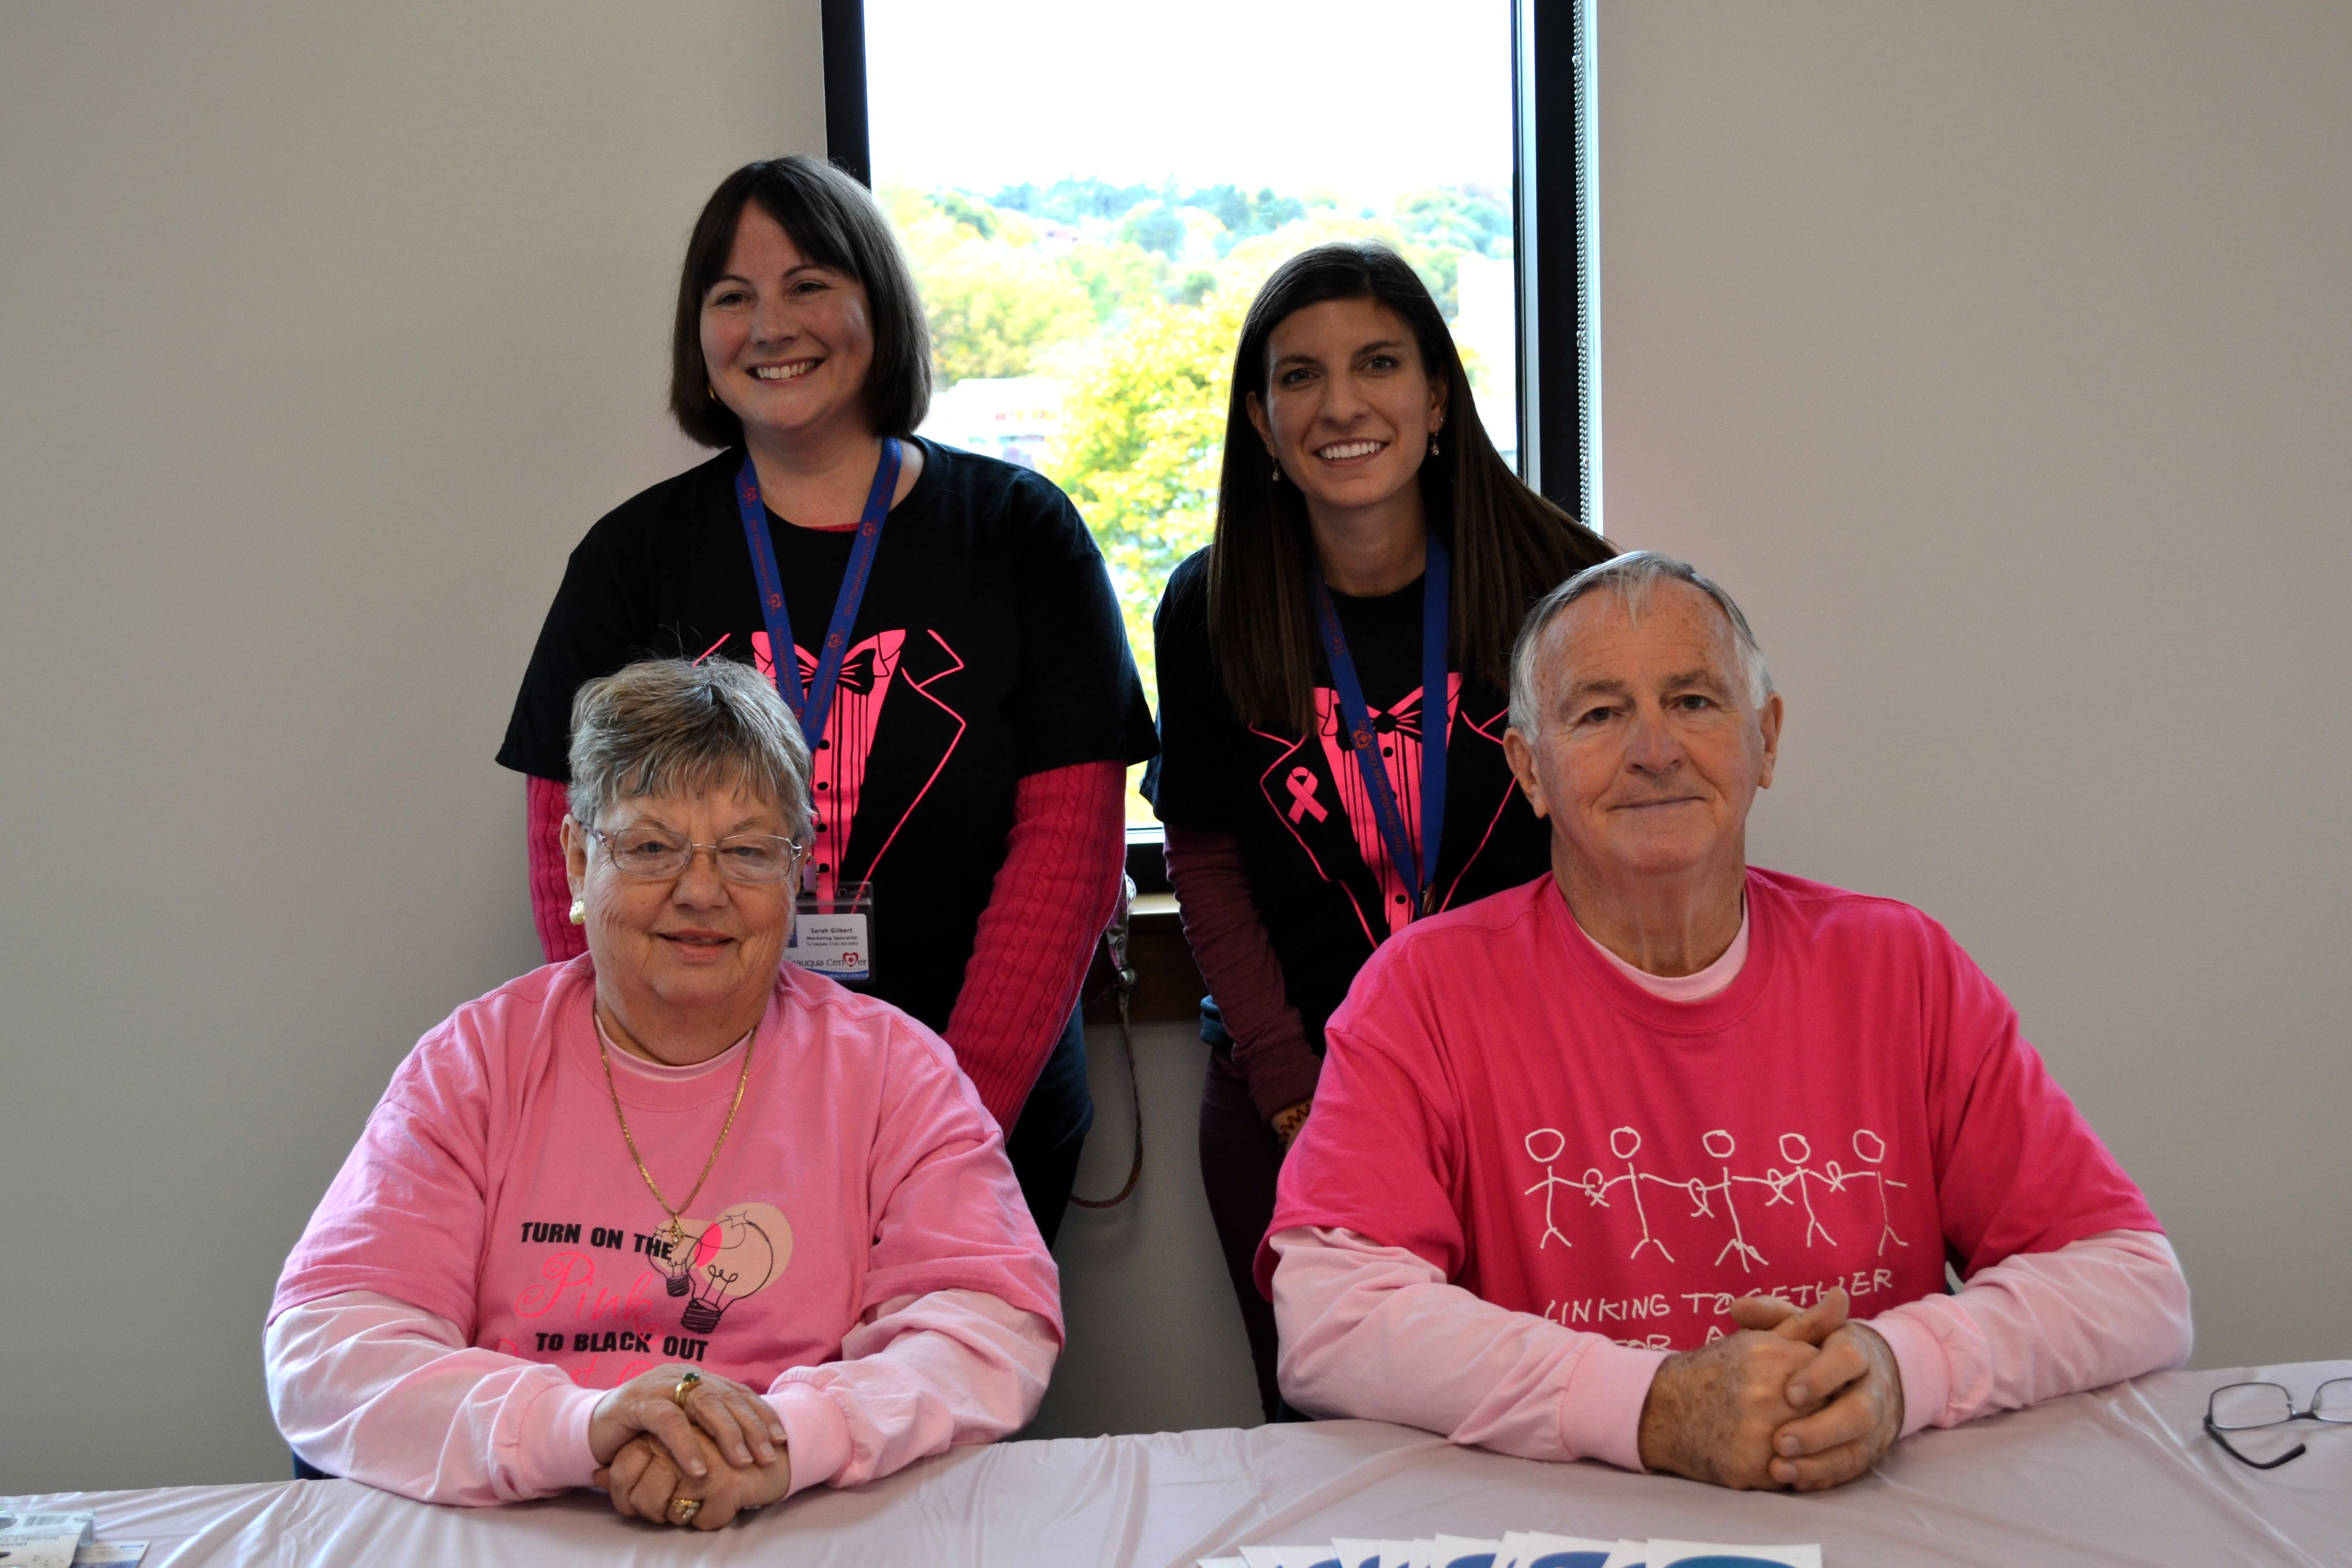 Sarah Gilbert and Alicia Ekstrom, The Chautauqua Center Marketing Specialists and Pat Carr and John Smith, breast cancer survivors and members of the Jamestown Cancer Support Group at last year's in-person event